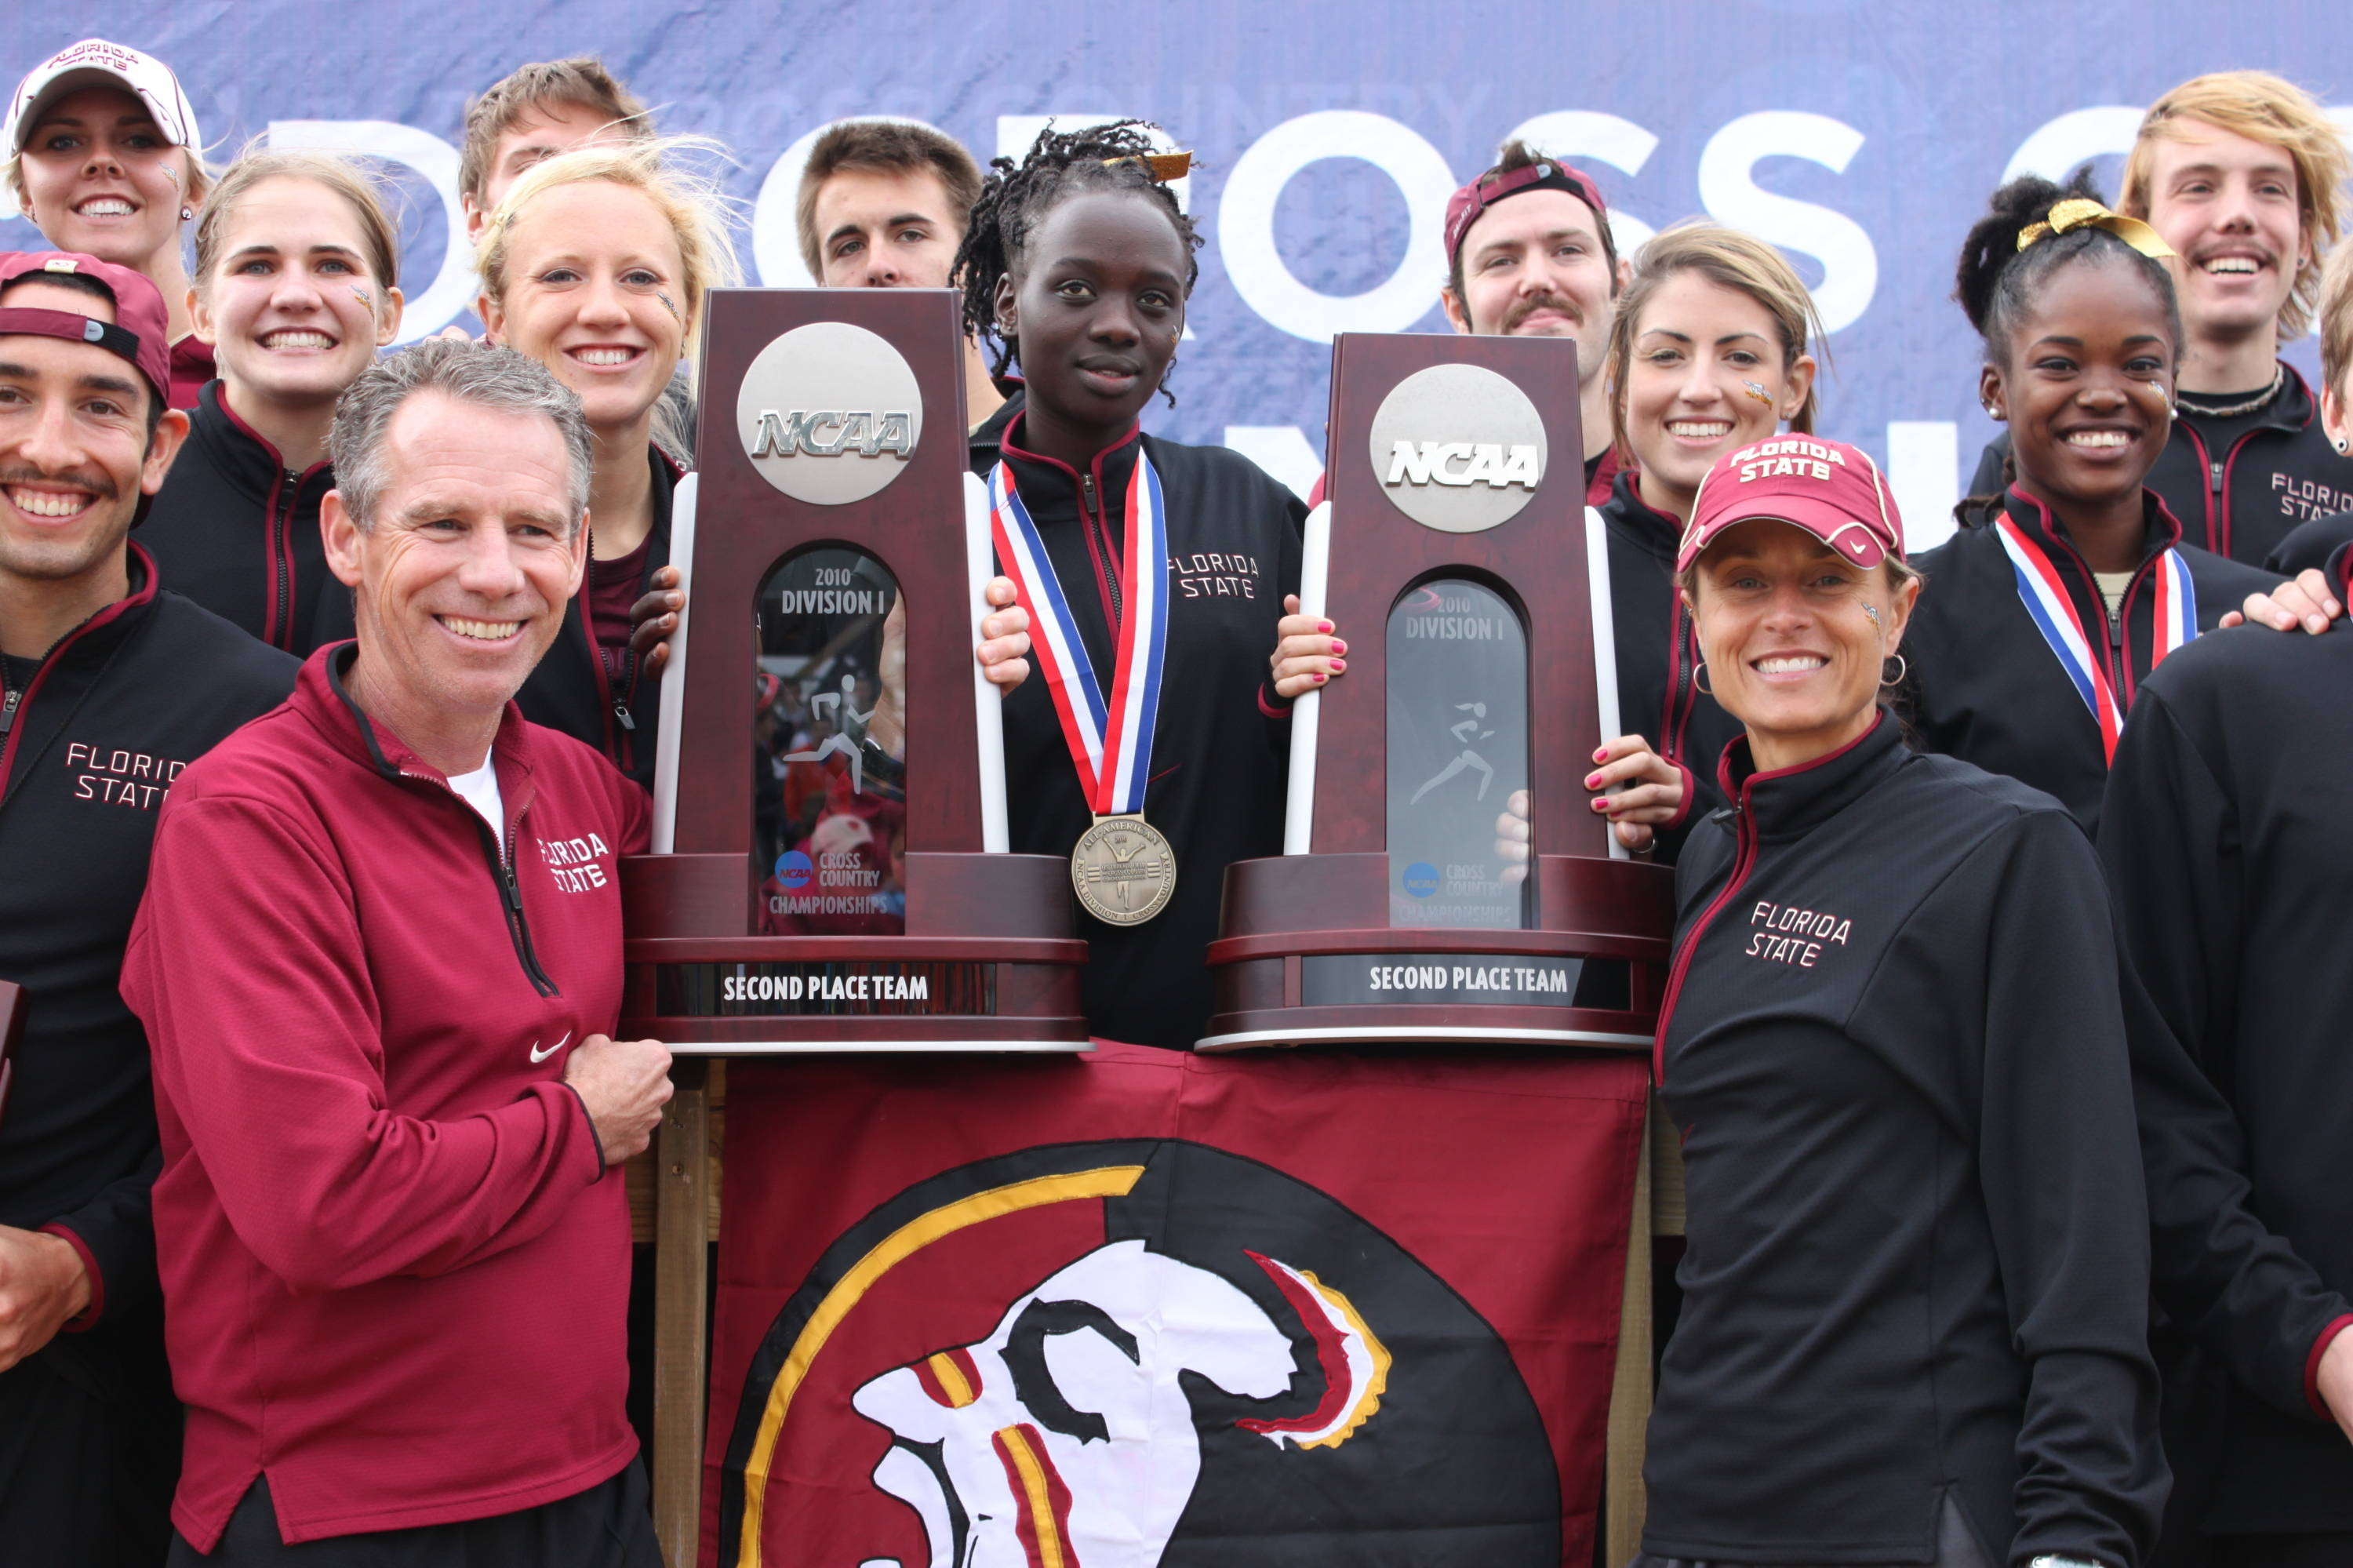 Coaches Bob Braman and Karen Harvey beam with the latest hardware additions to the cross country trophy case.